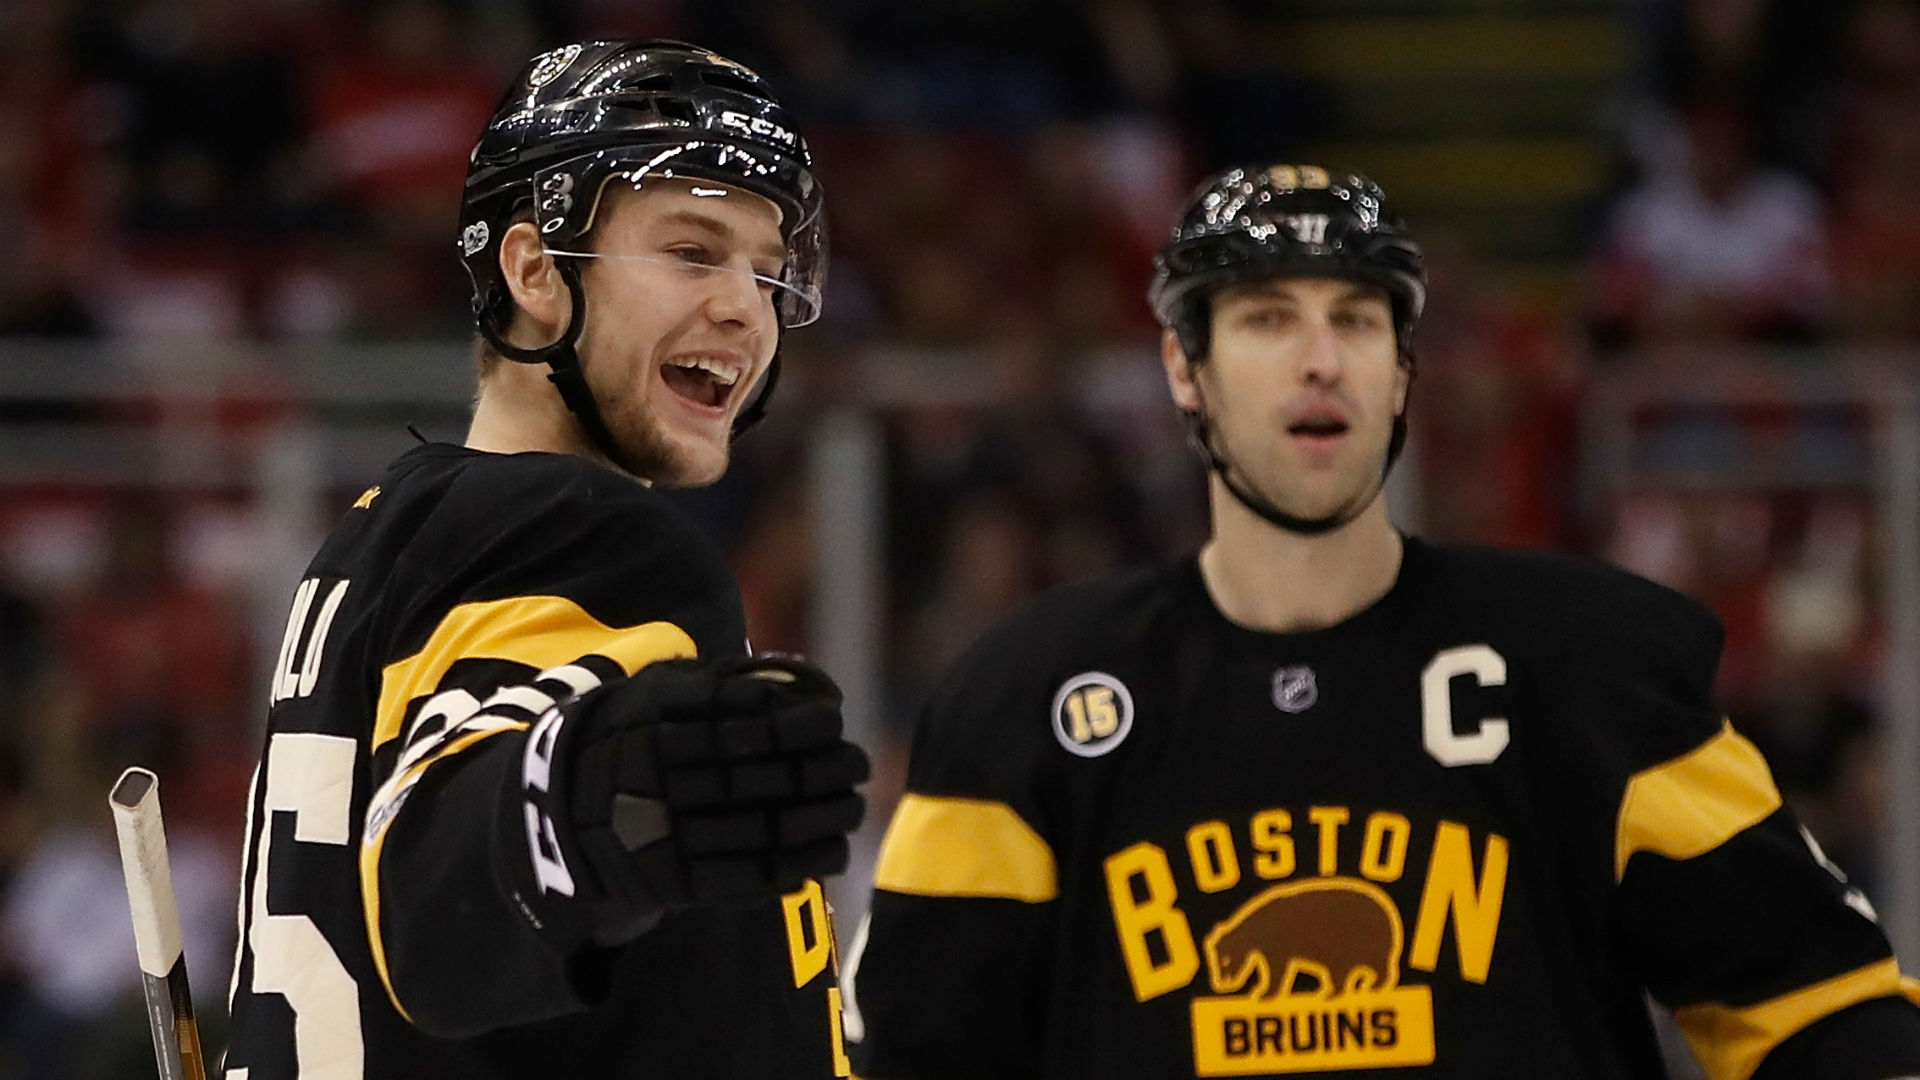 Bruins' Backes Out 3-4 Weeks With Diverticulitis